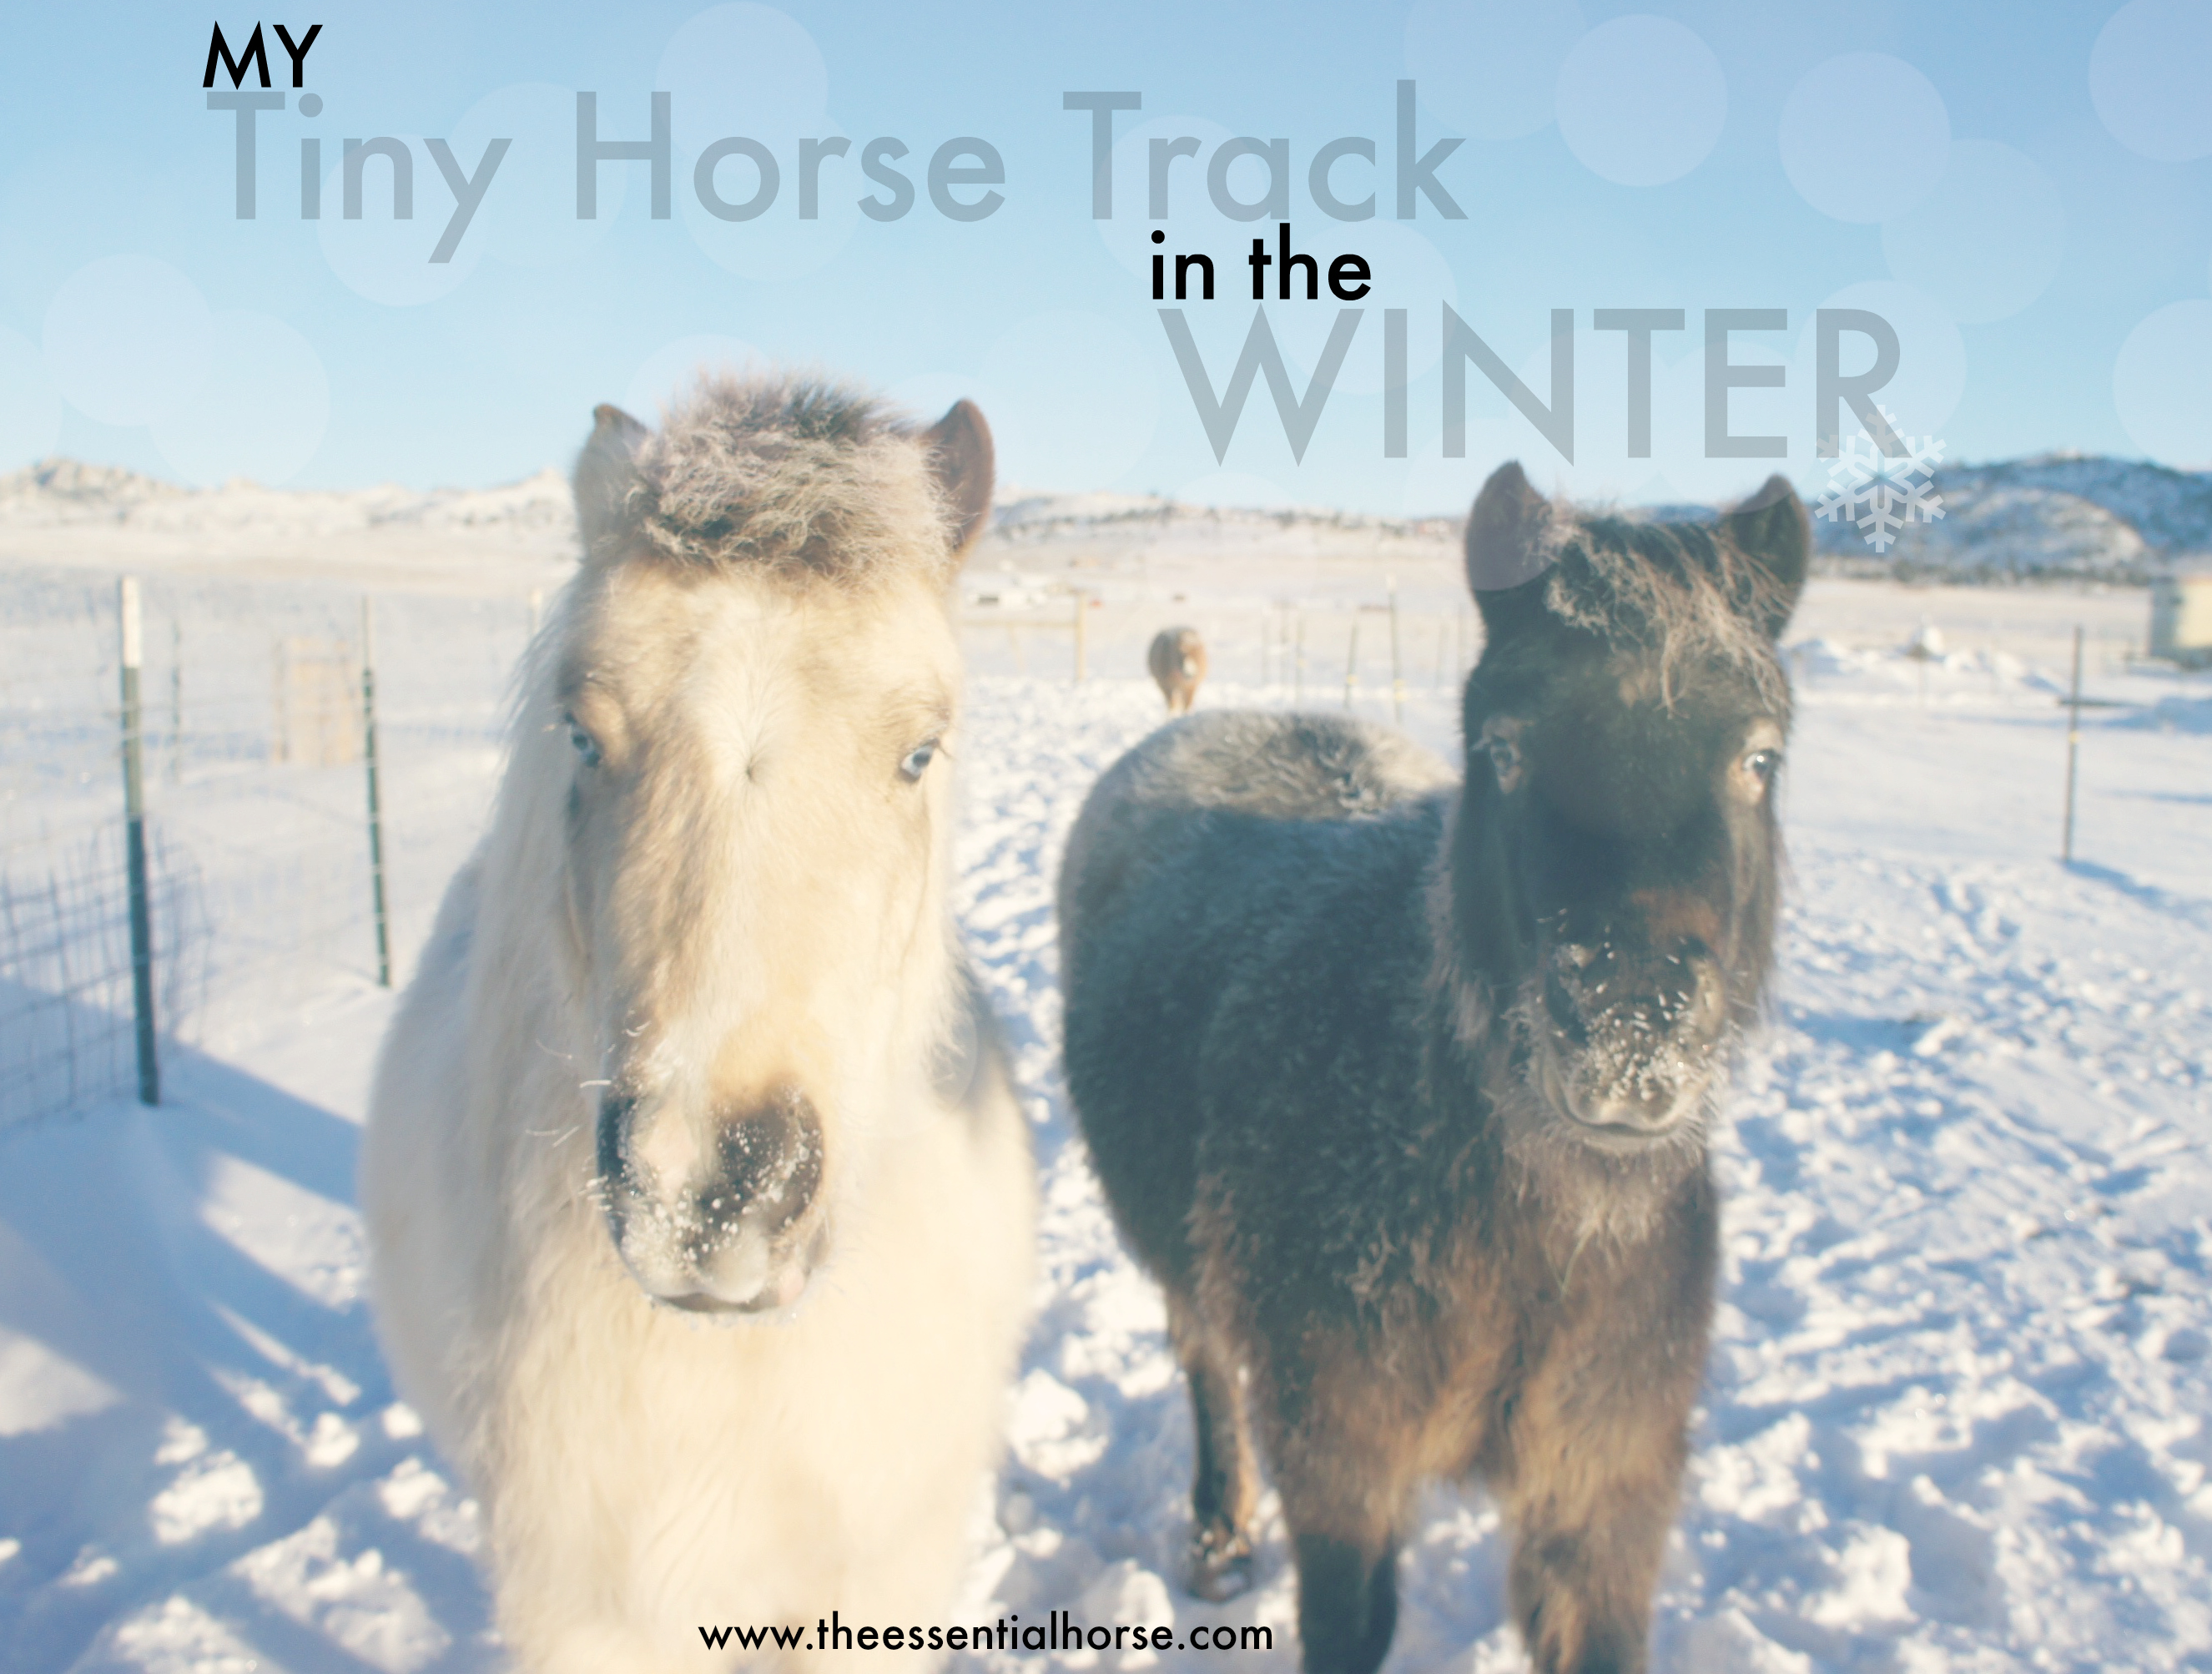 My Tiny Horse Track in the Winter